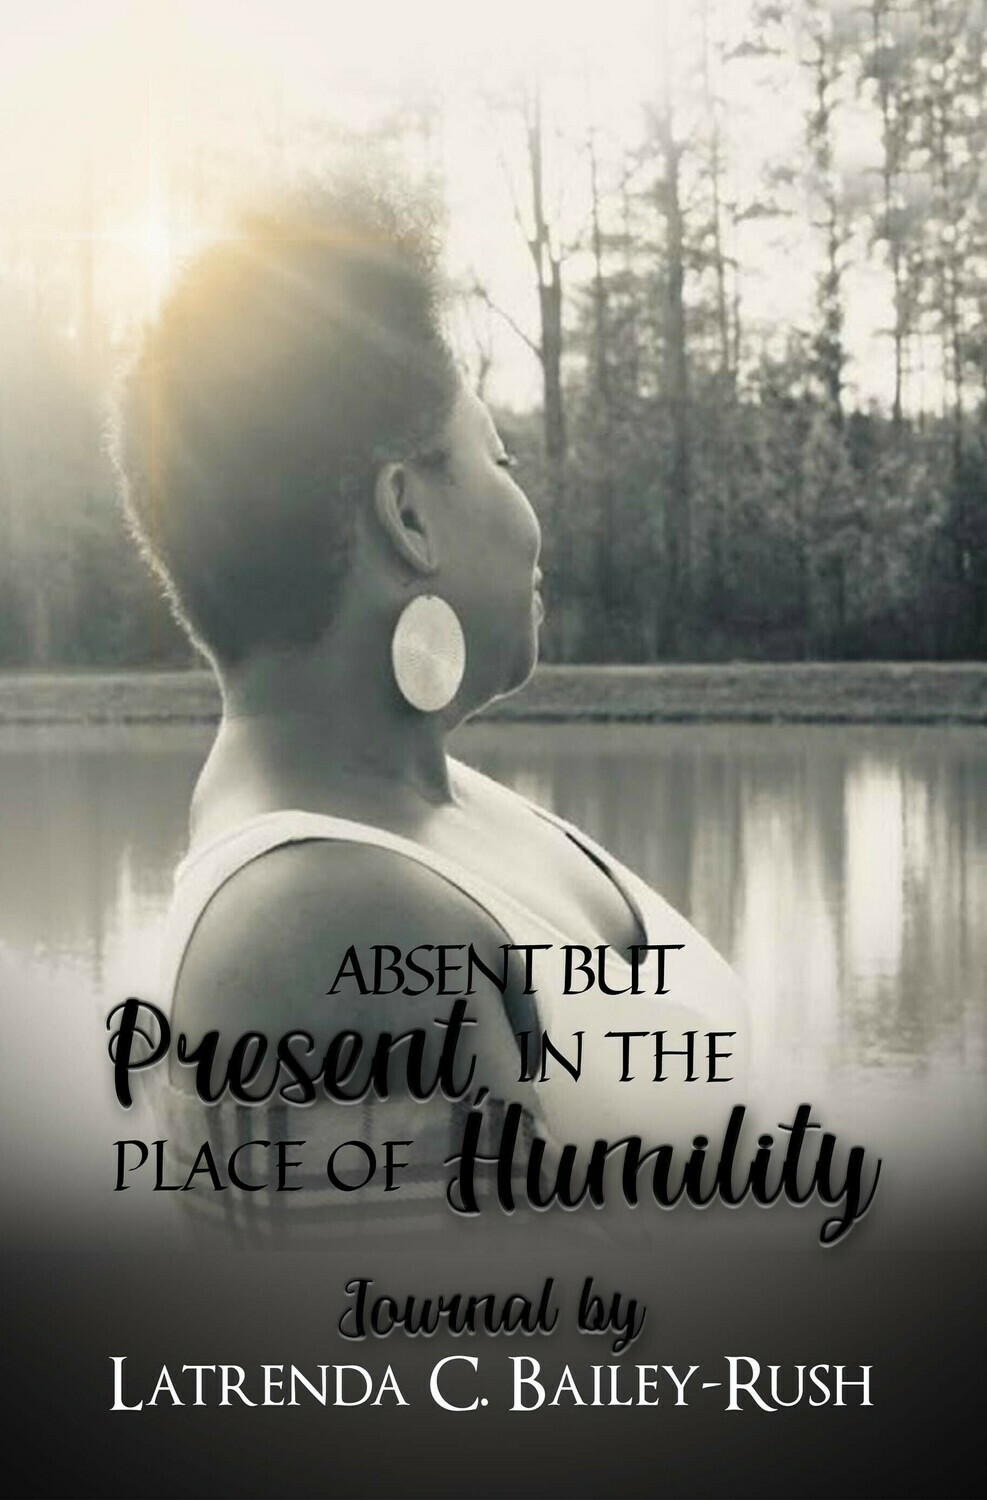 Absent But Present in the Place of Humility by Latrenda Bailey-Rush